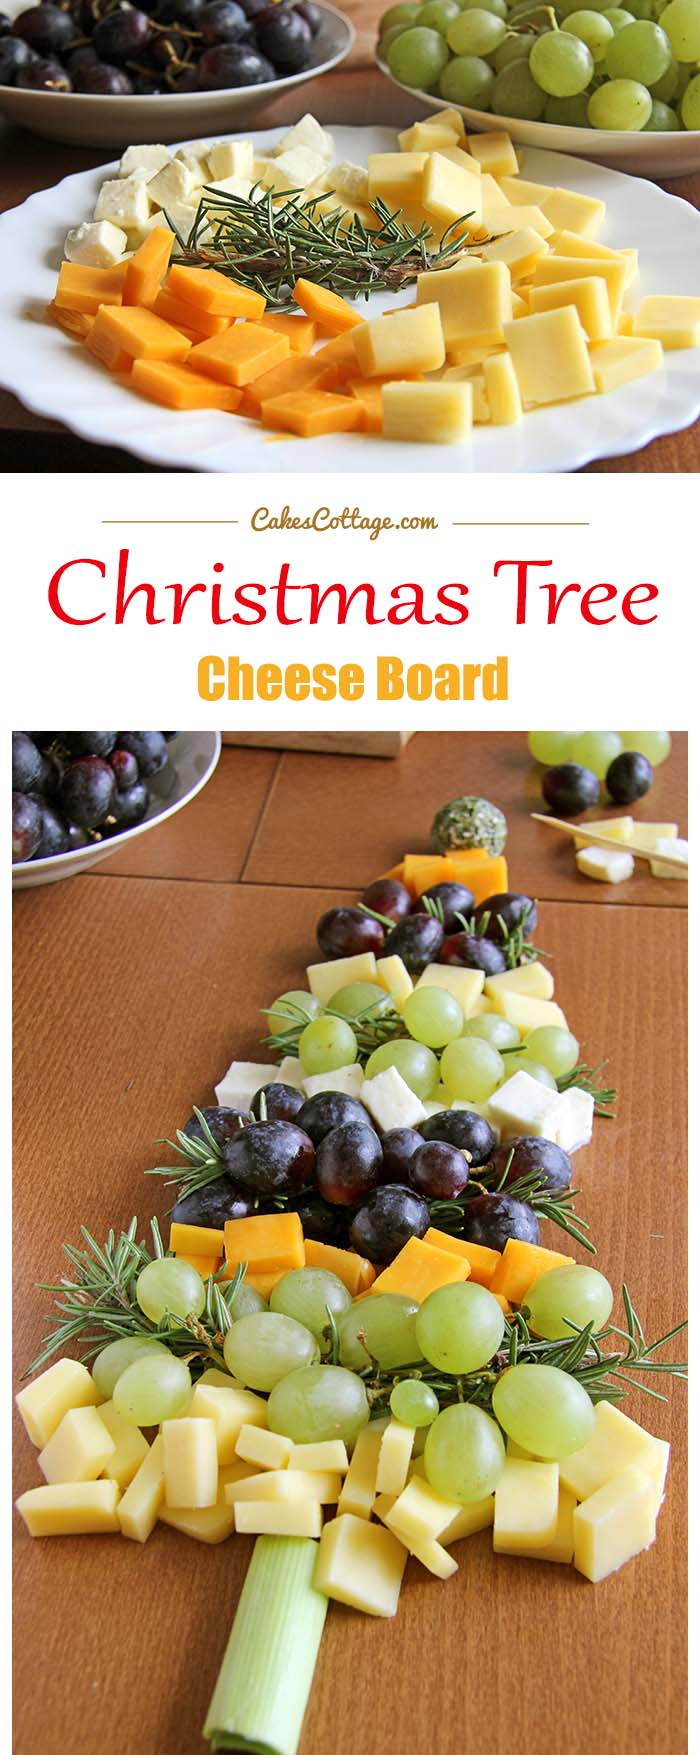 Christmas Tree Cheese Board Cakescottage